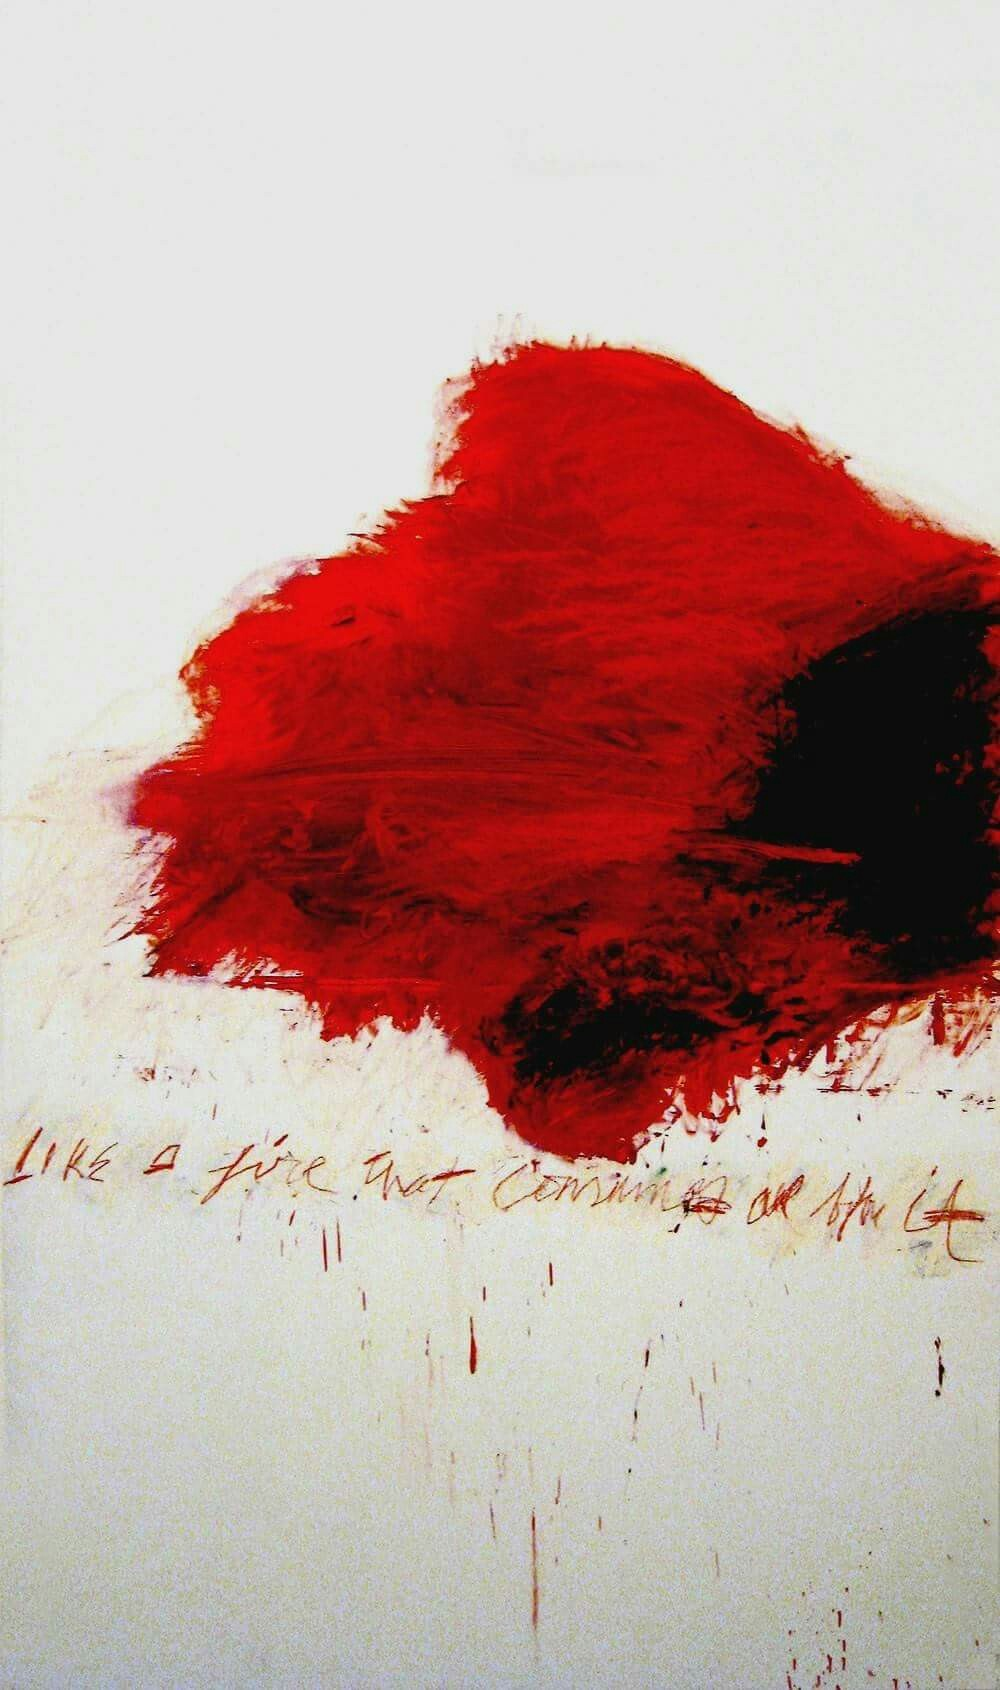 "Artist: Cy Twombly, 1978 ""Like a Fire that Consumes all before it."""